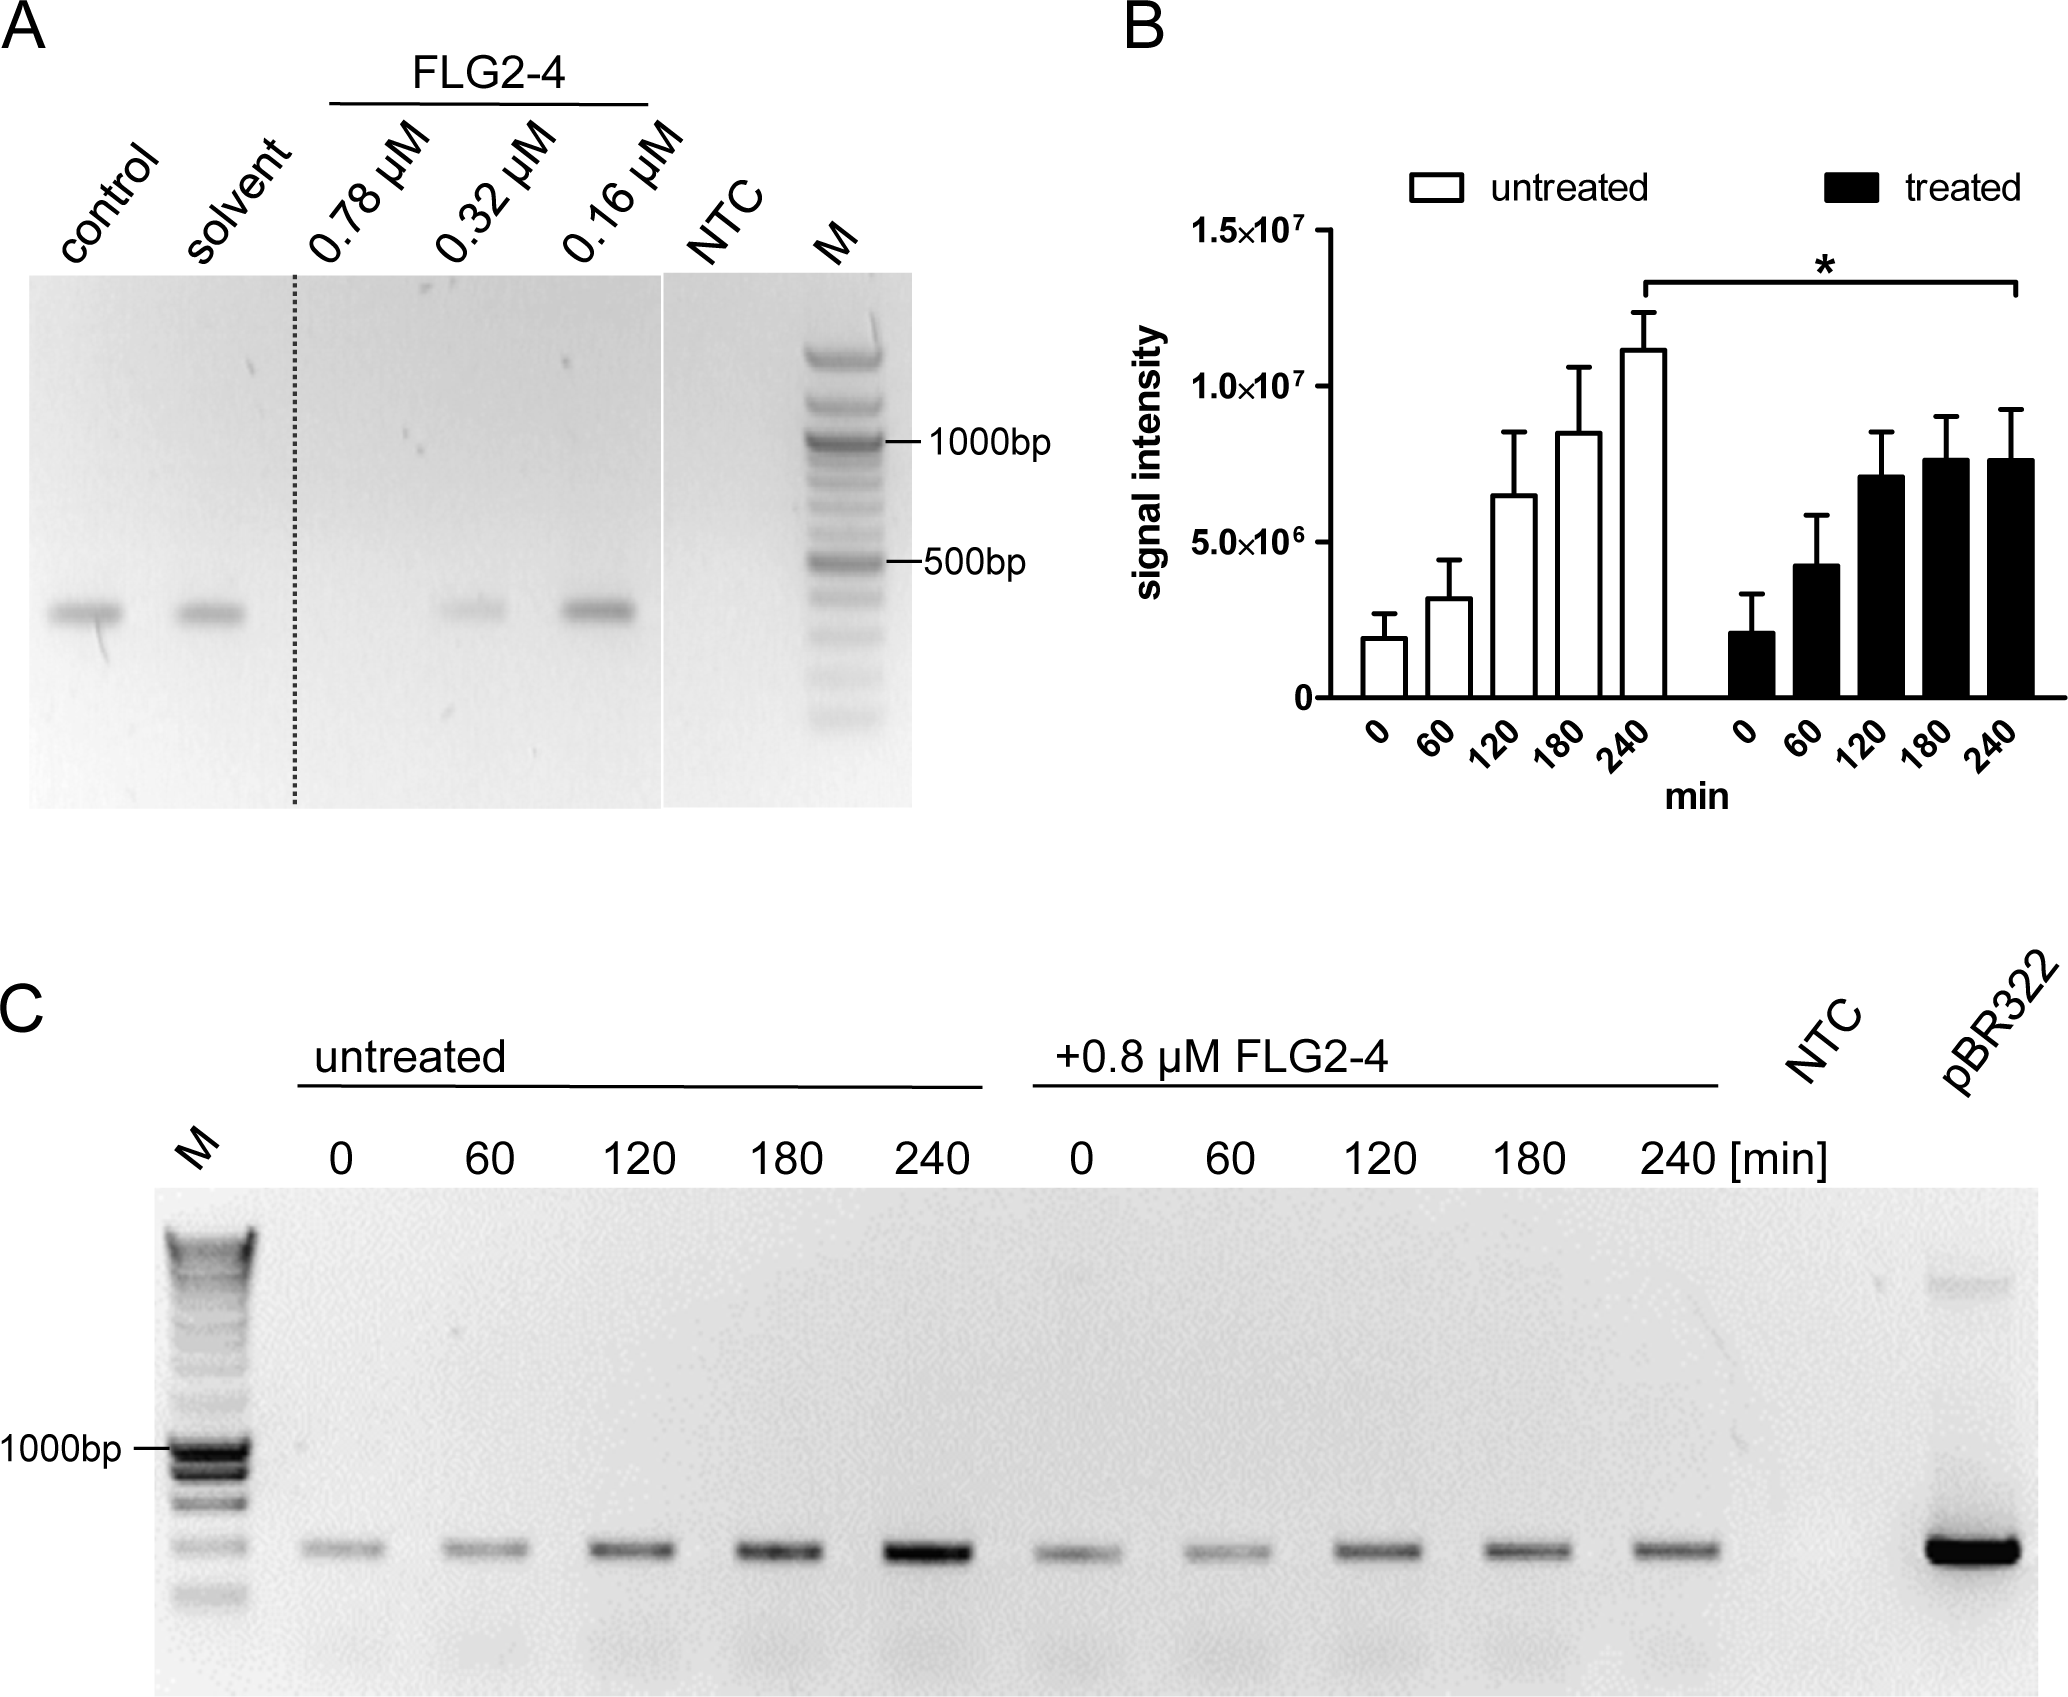 FLG2-4 is able to inhibit bacterial replication.